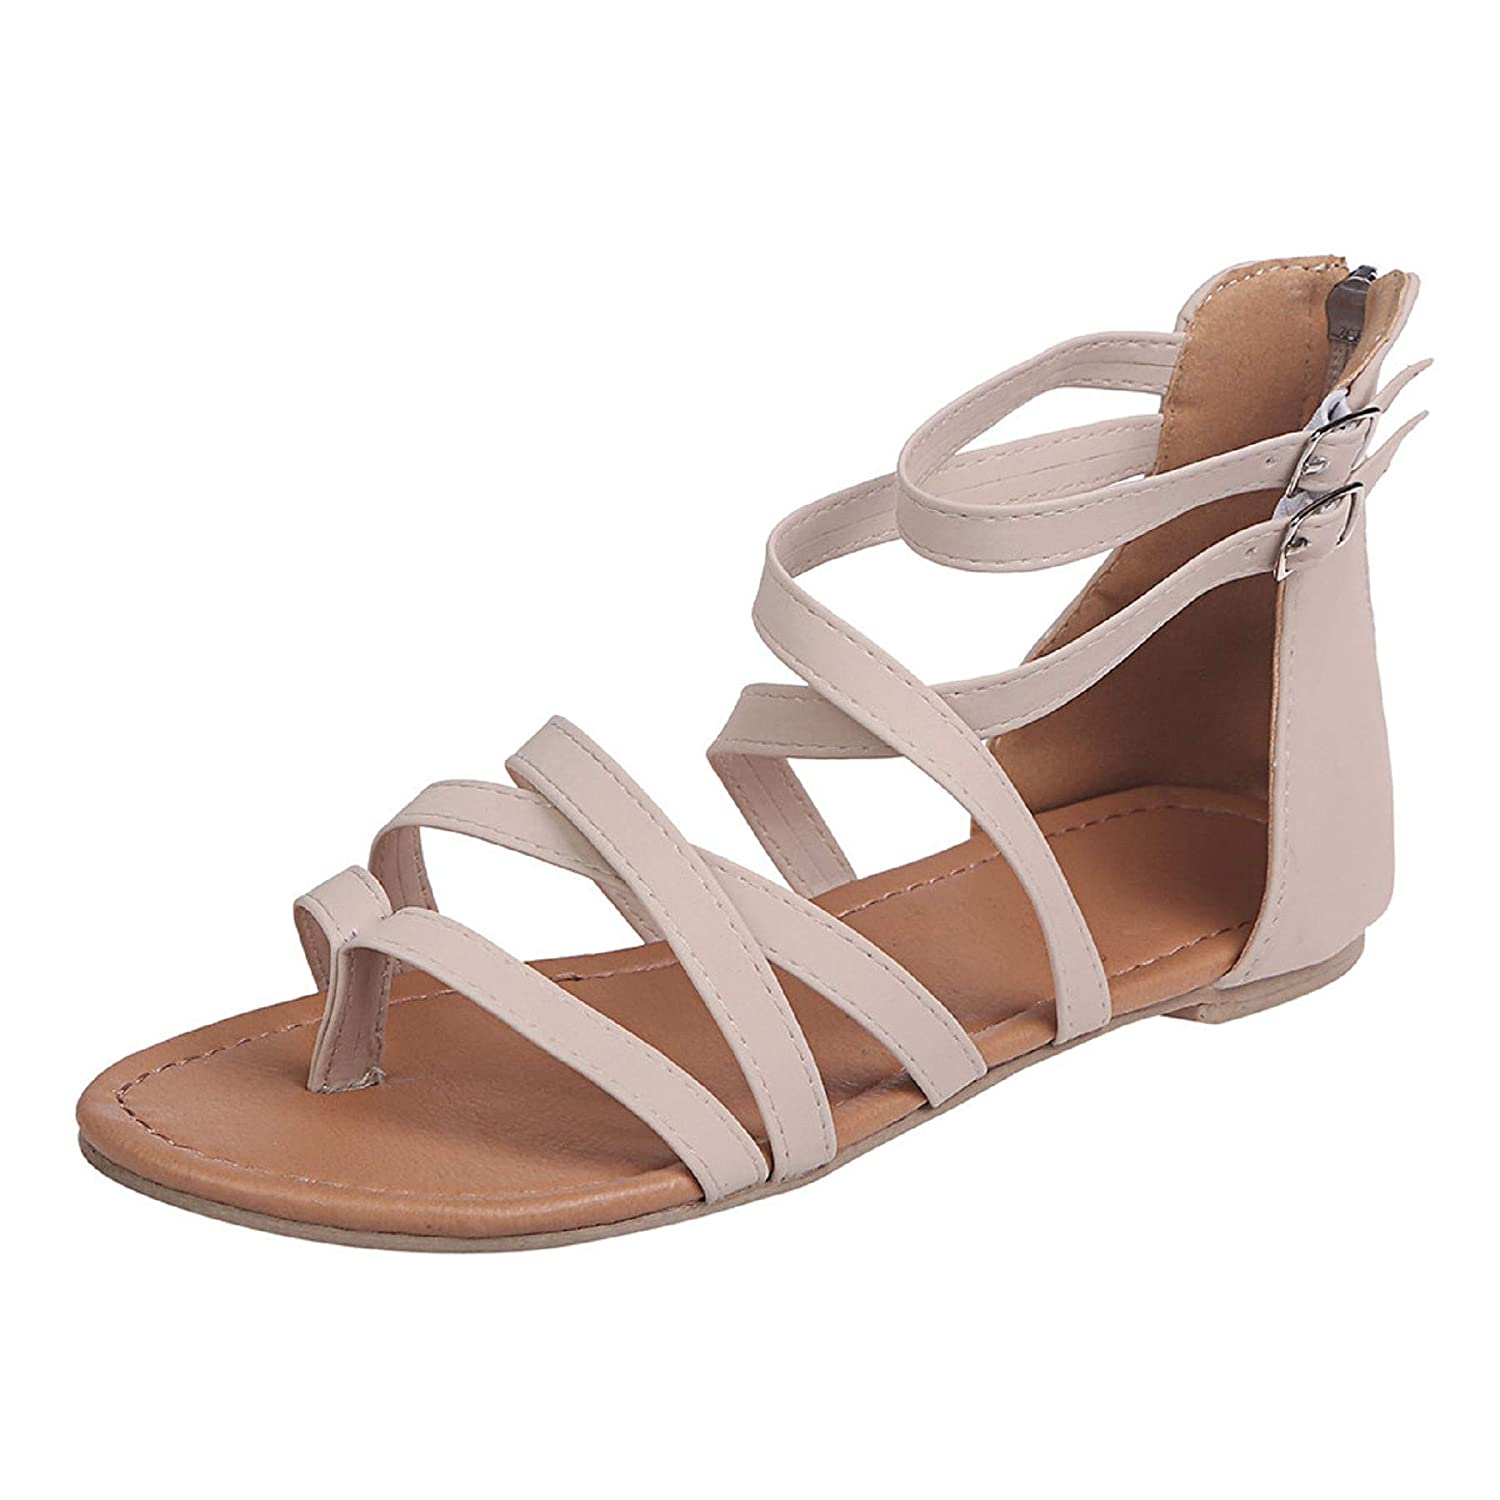 baskuwish Summer Shoes,Women Casual Rome Solid Open Toe Beach Sandals Zip Flat with Shoes